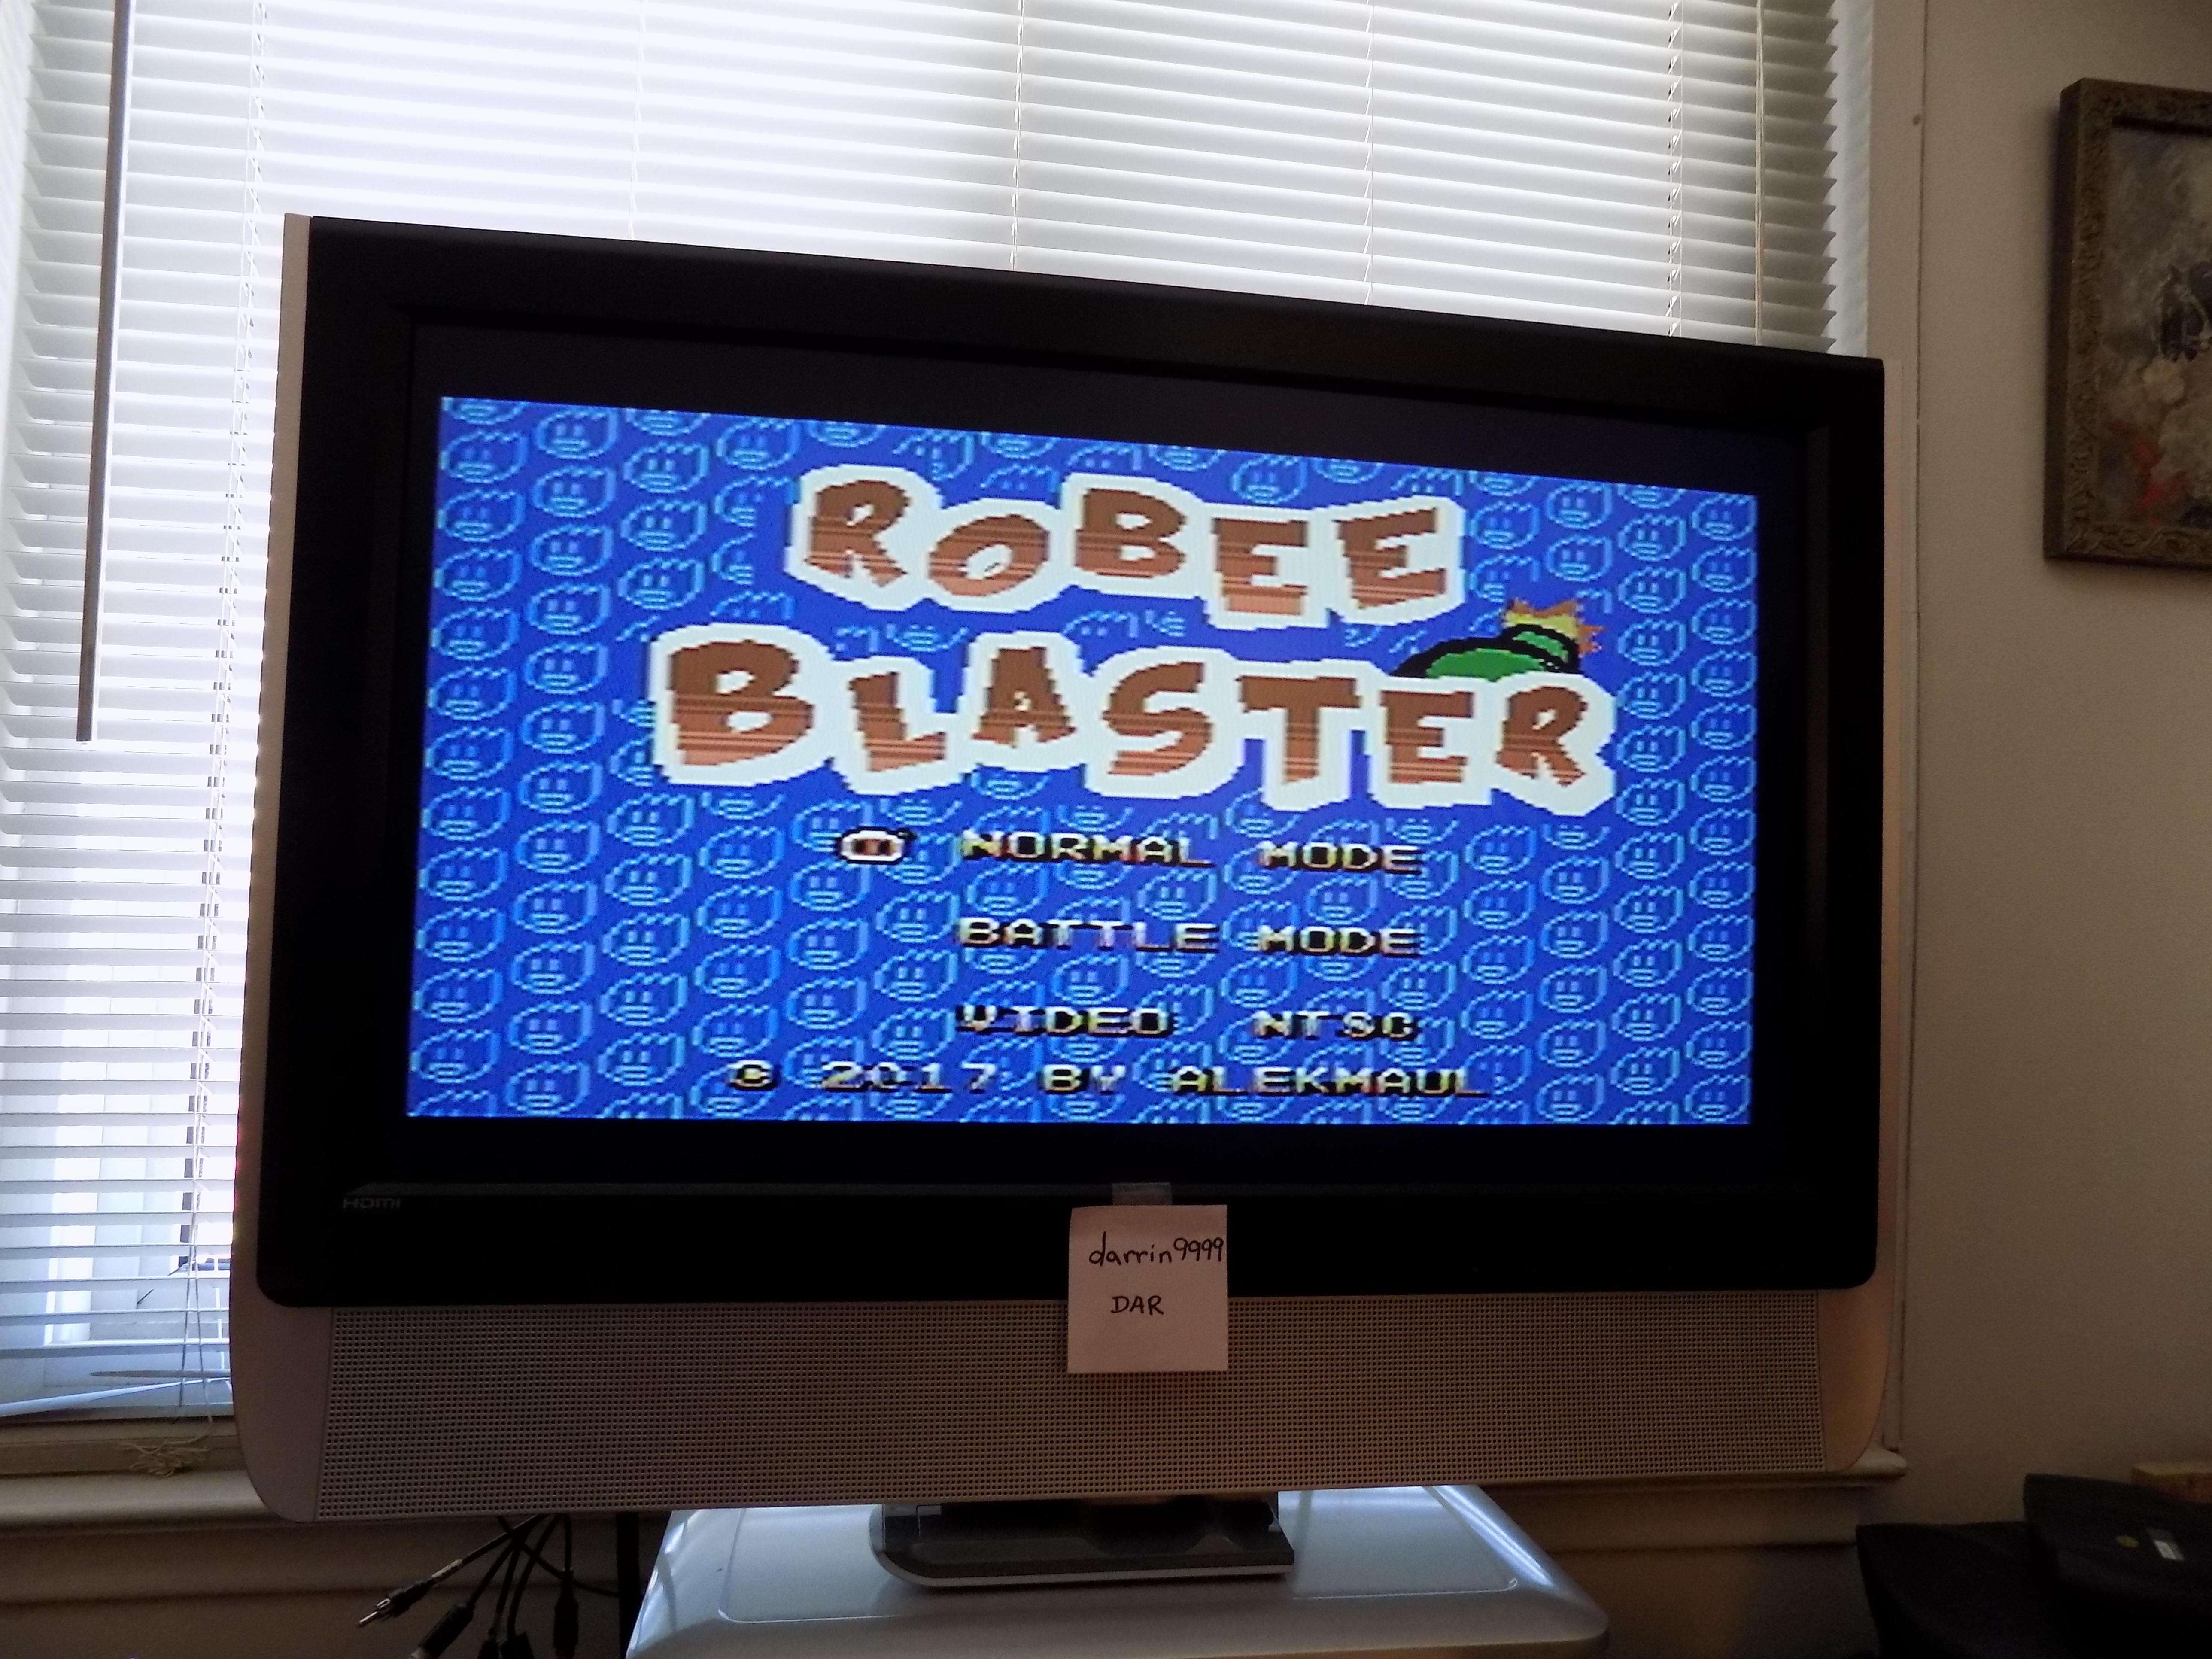 darrin9999: Robee Blaster (Colecovision) 39,900 points on 2017-08-04 11:06:10